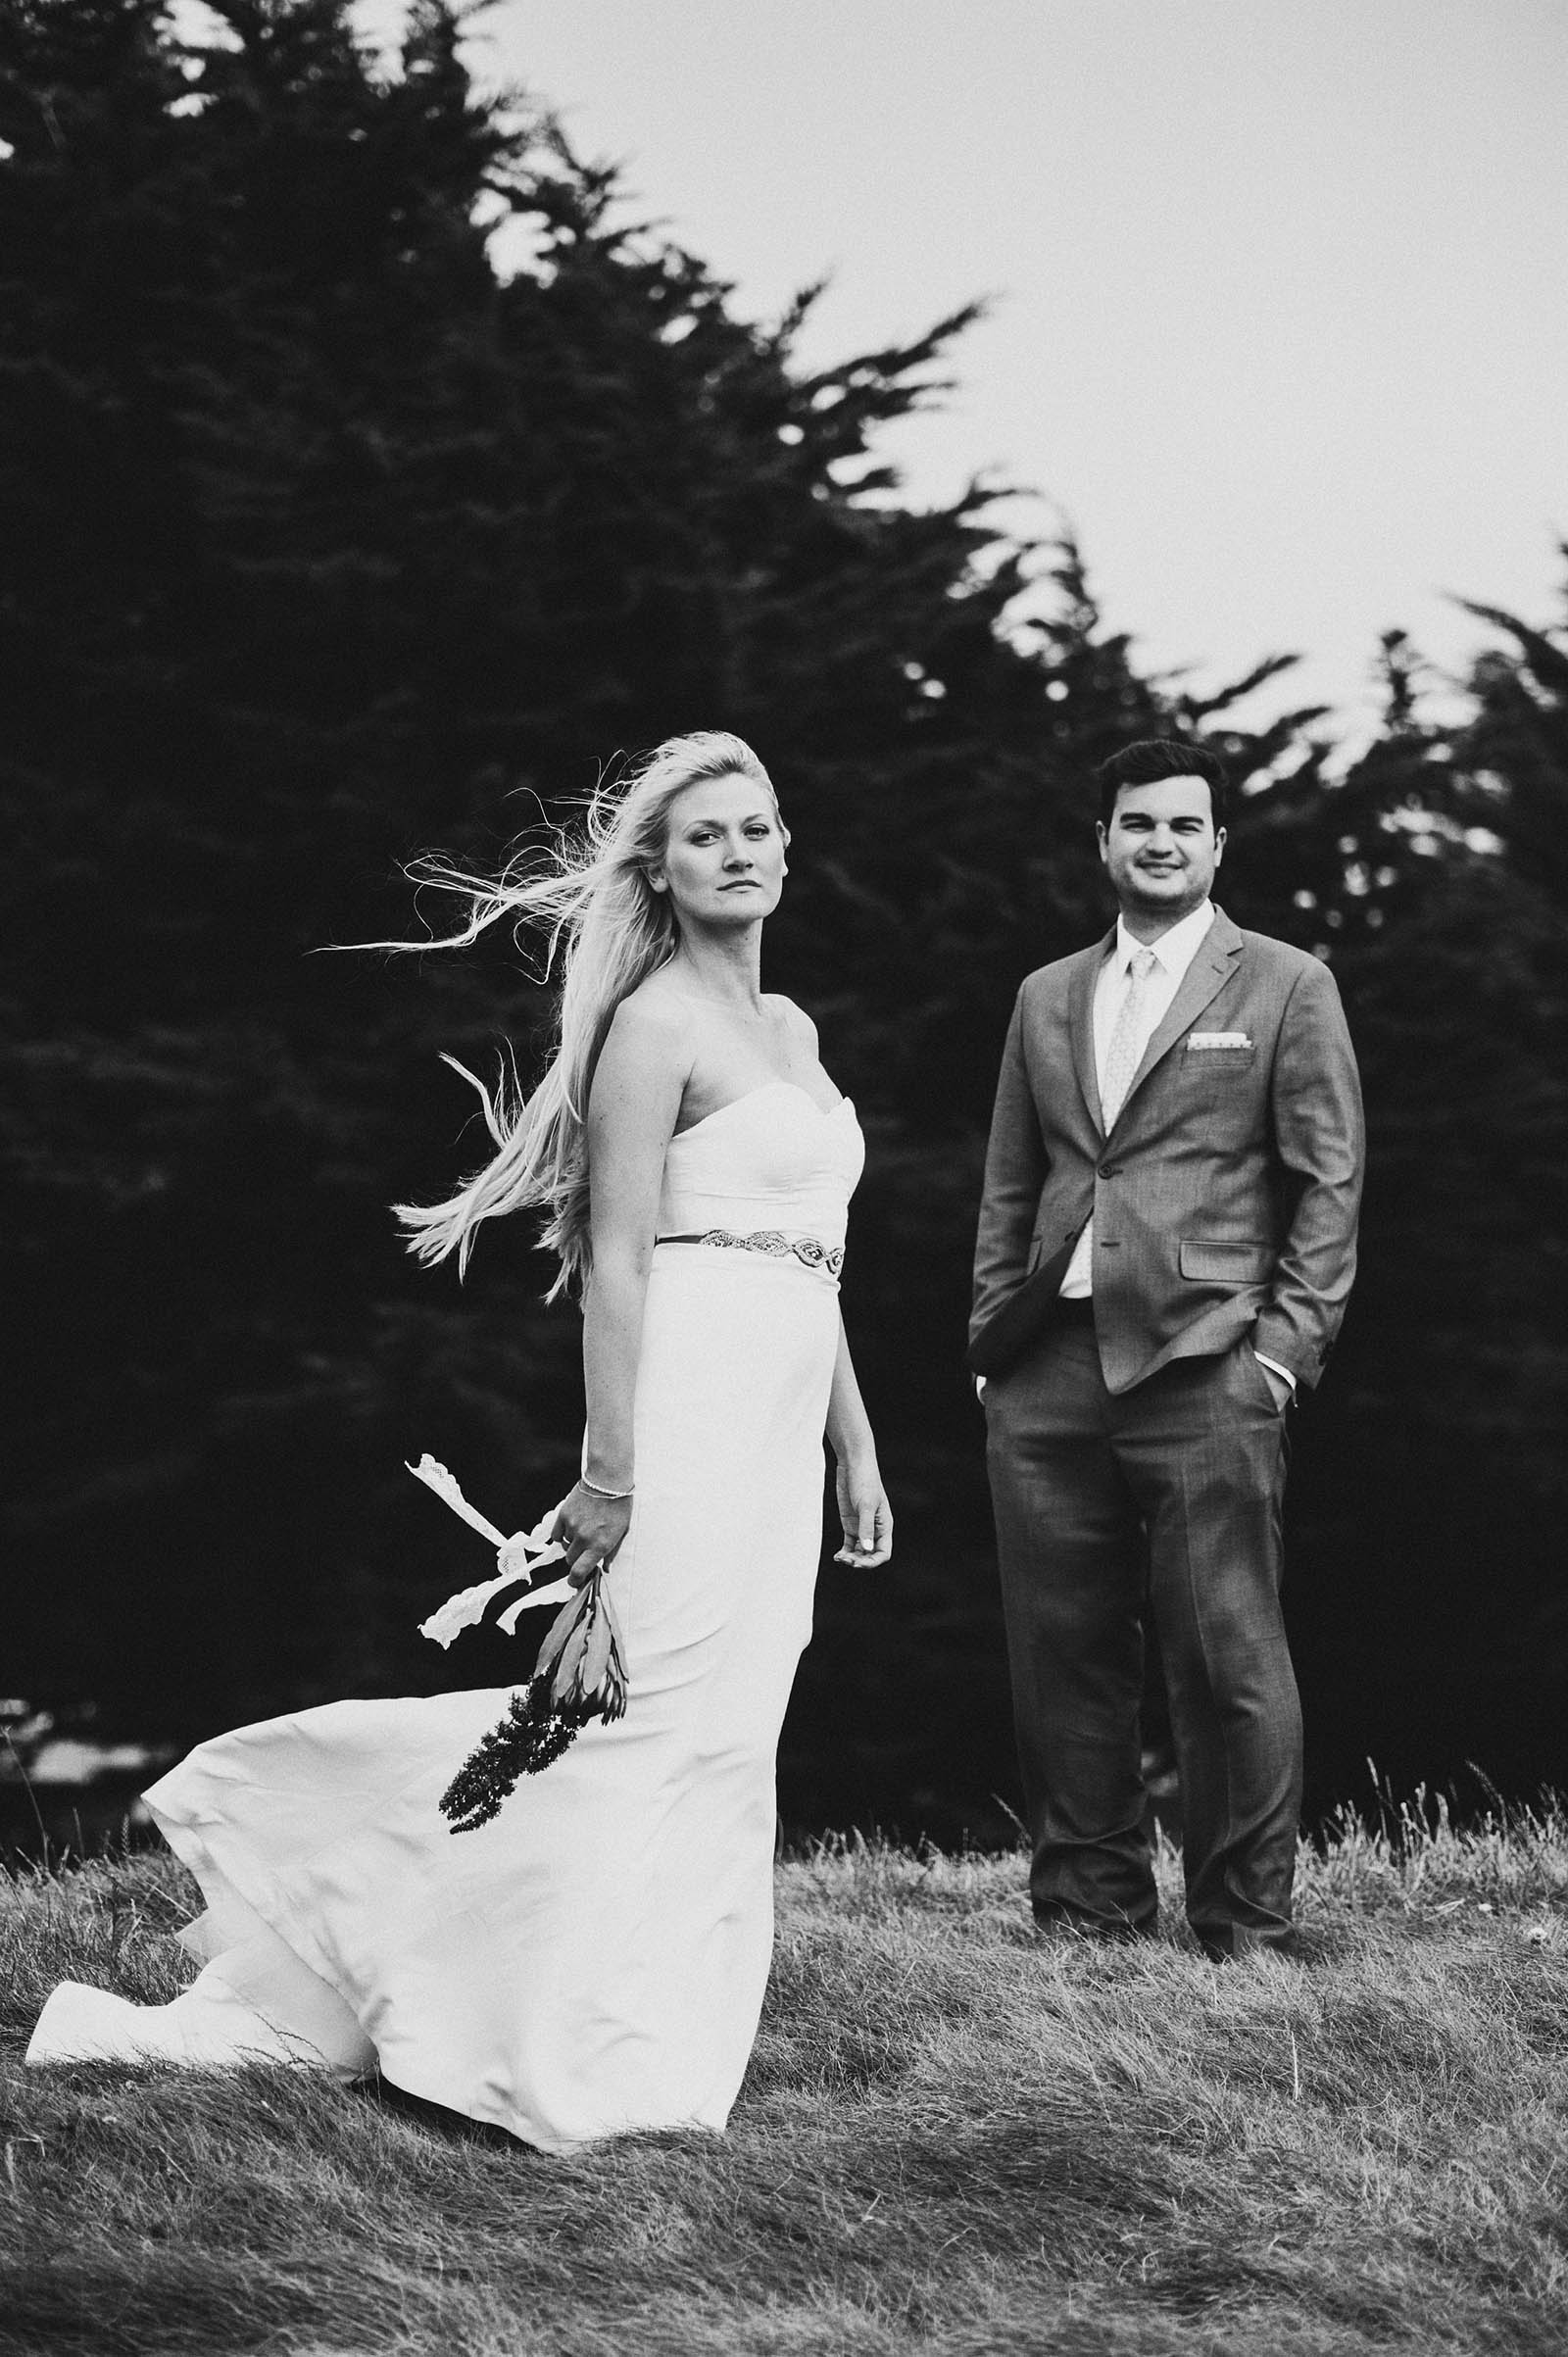 Portrait of Bride and Groom at the beach | San Francisco City Hall Wedding